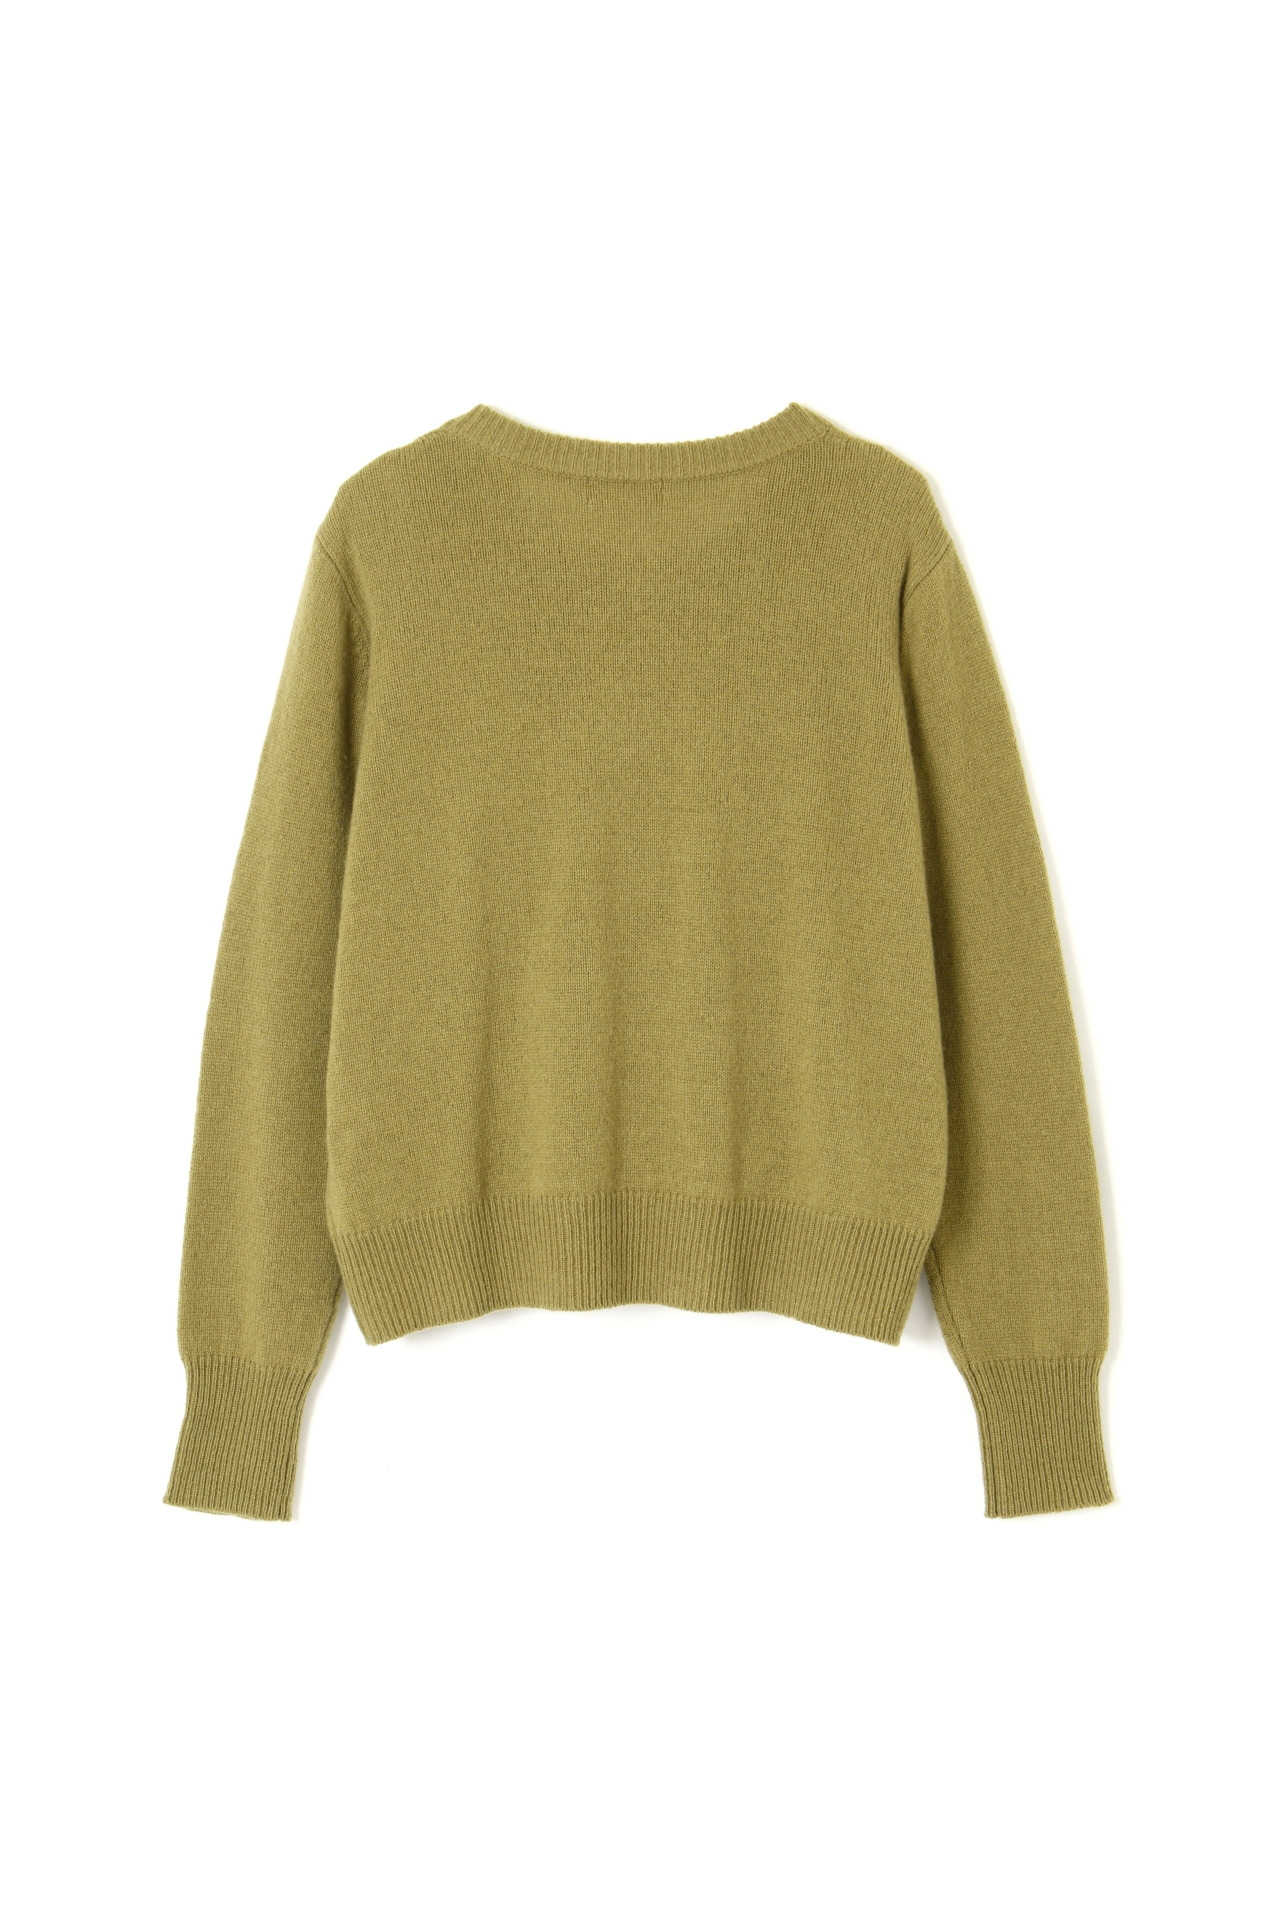 TWISTED CASHMERE WOOL JUMPER7